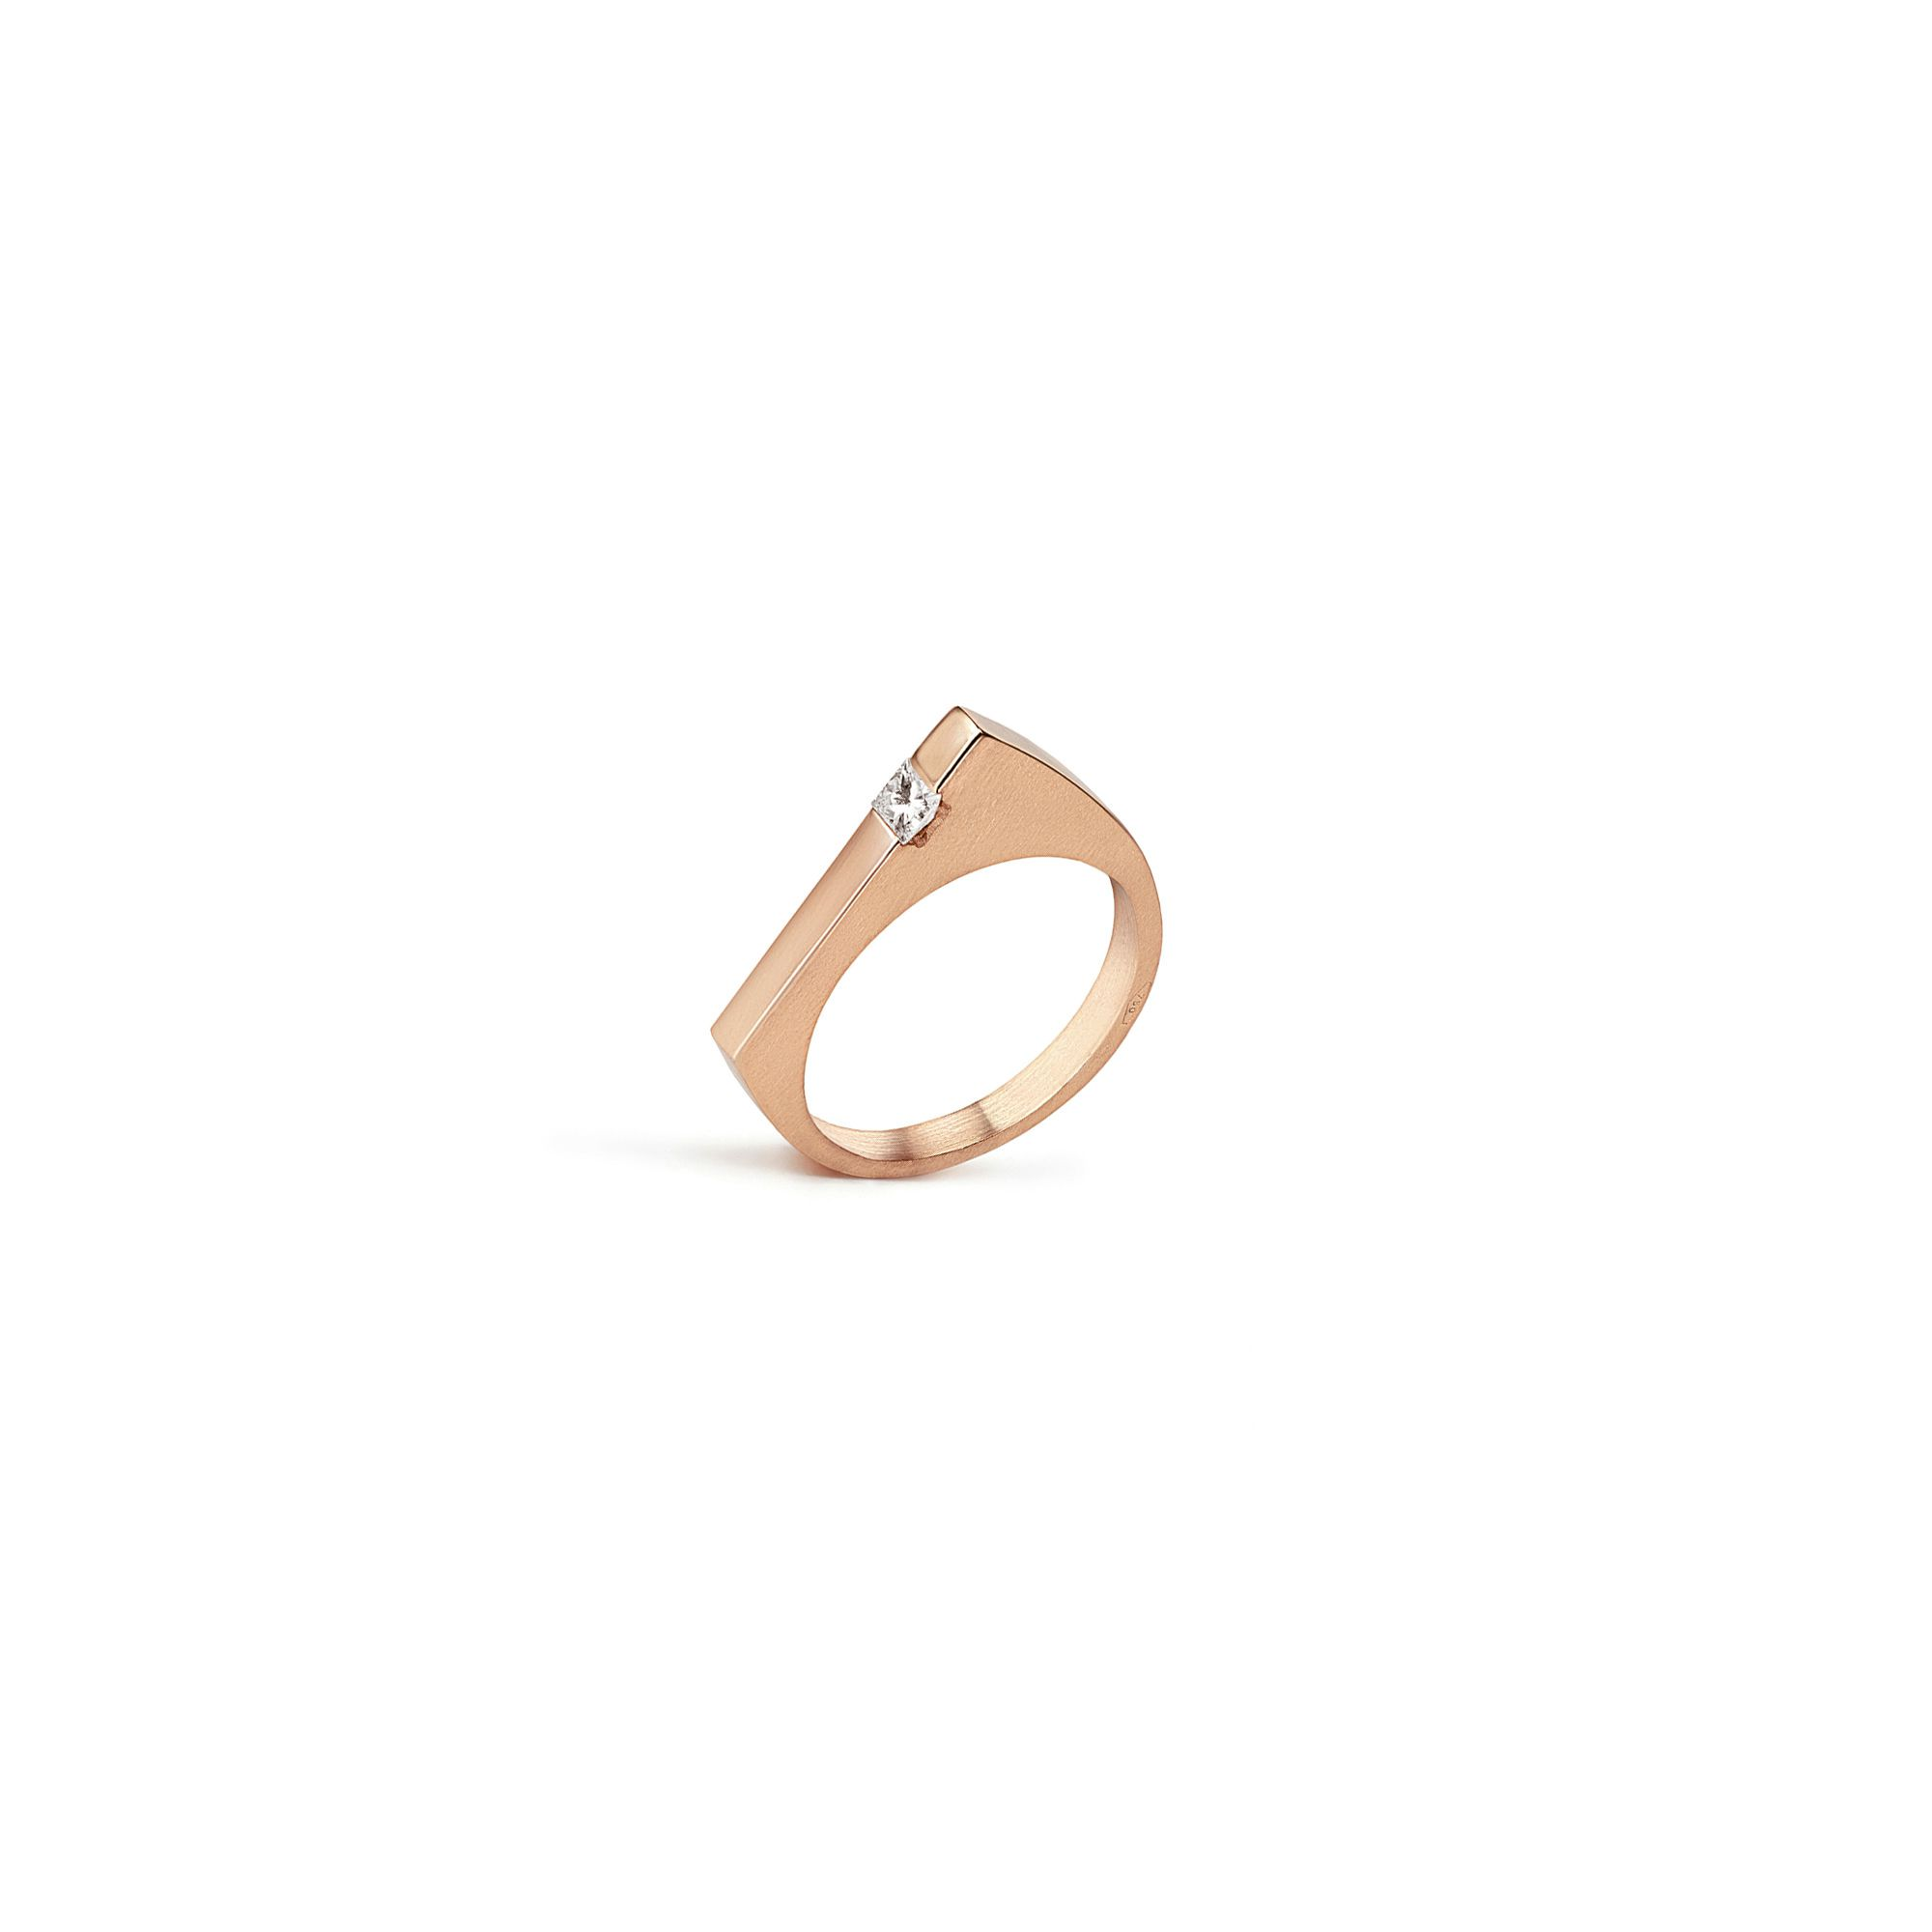 Modular 'Congiunzioni' point ring with Princess Rose gold ring with diamonds